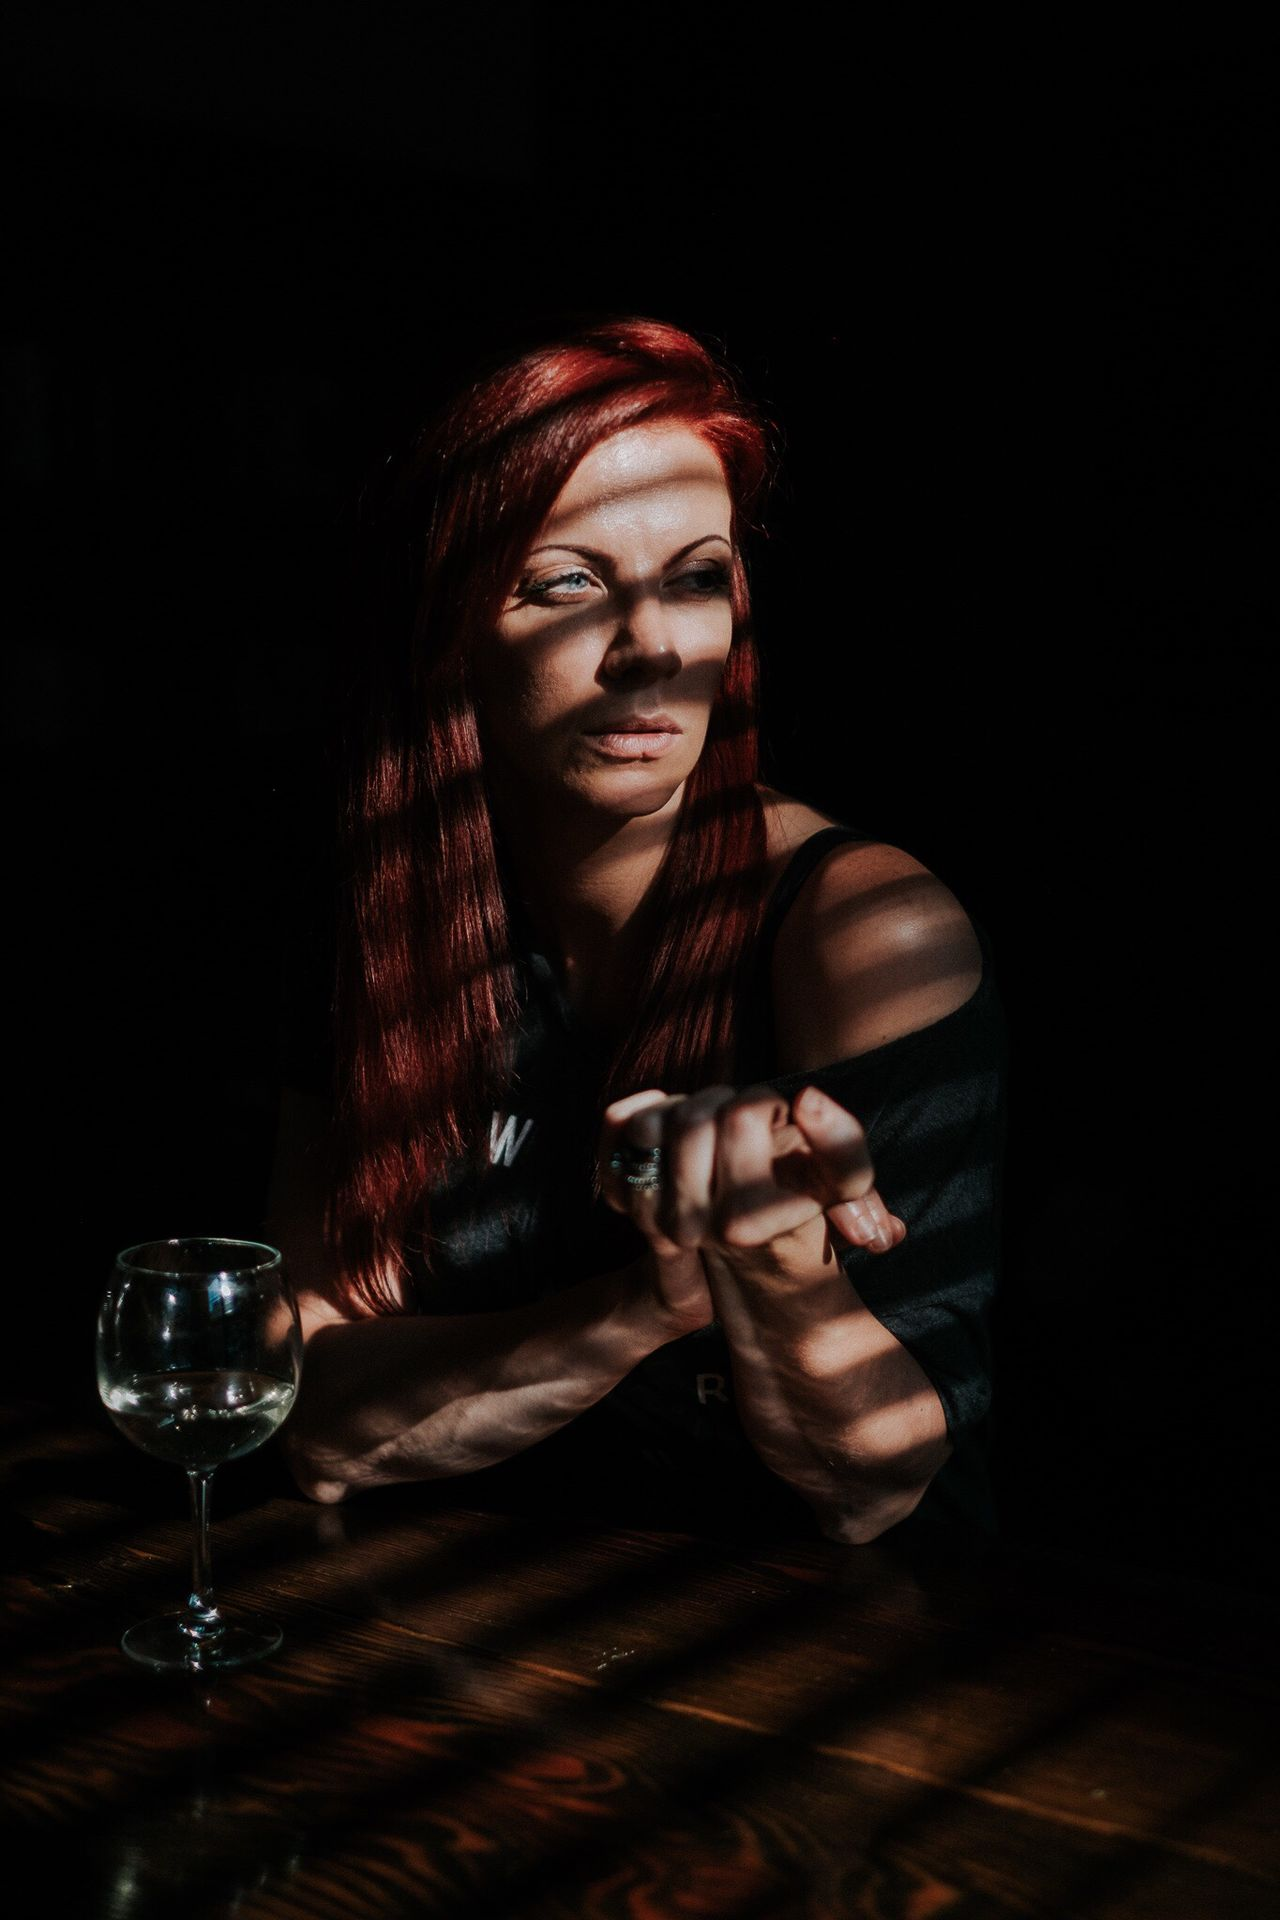 Atlanta,GA. 2016 Atlanta Atlanta Ga Portrait Portrait Of A Woman Light And Shadow Light Shadow Glass Glass Of Wine Table Documentary Fujifilm Fujifilm_xseries FUJIFILM X-T1